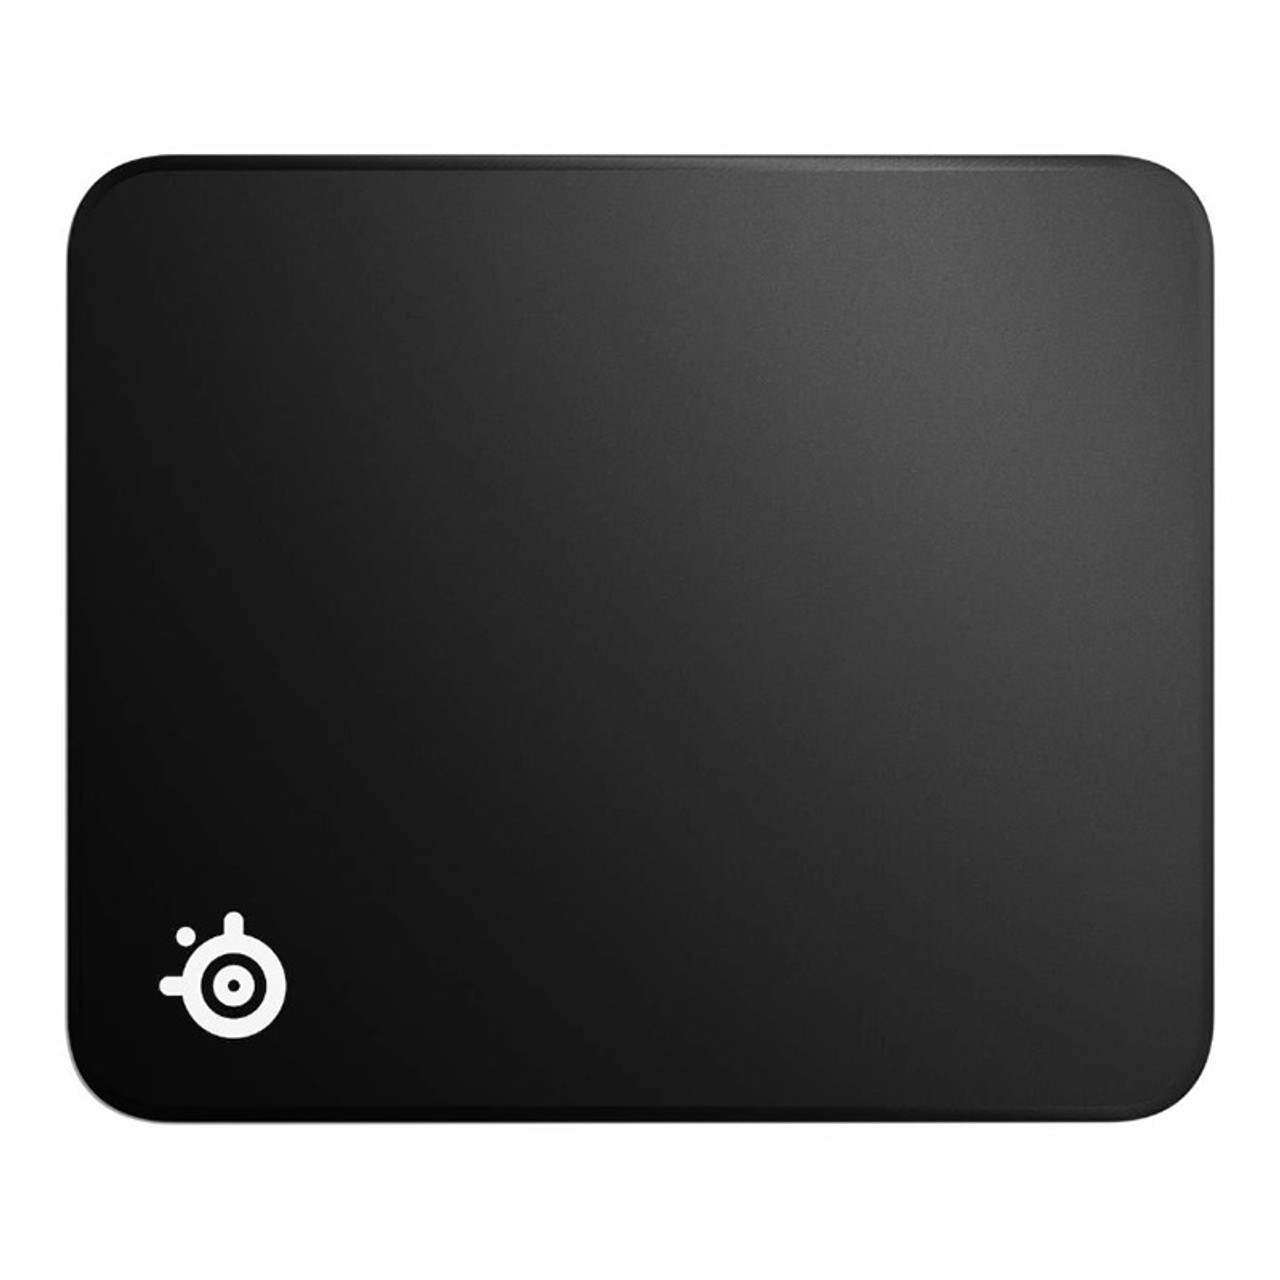 Image for SteelSeries QcK Edge Gaming Mouse Pad - Large CX Computer Superstore